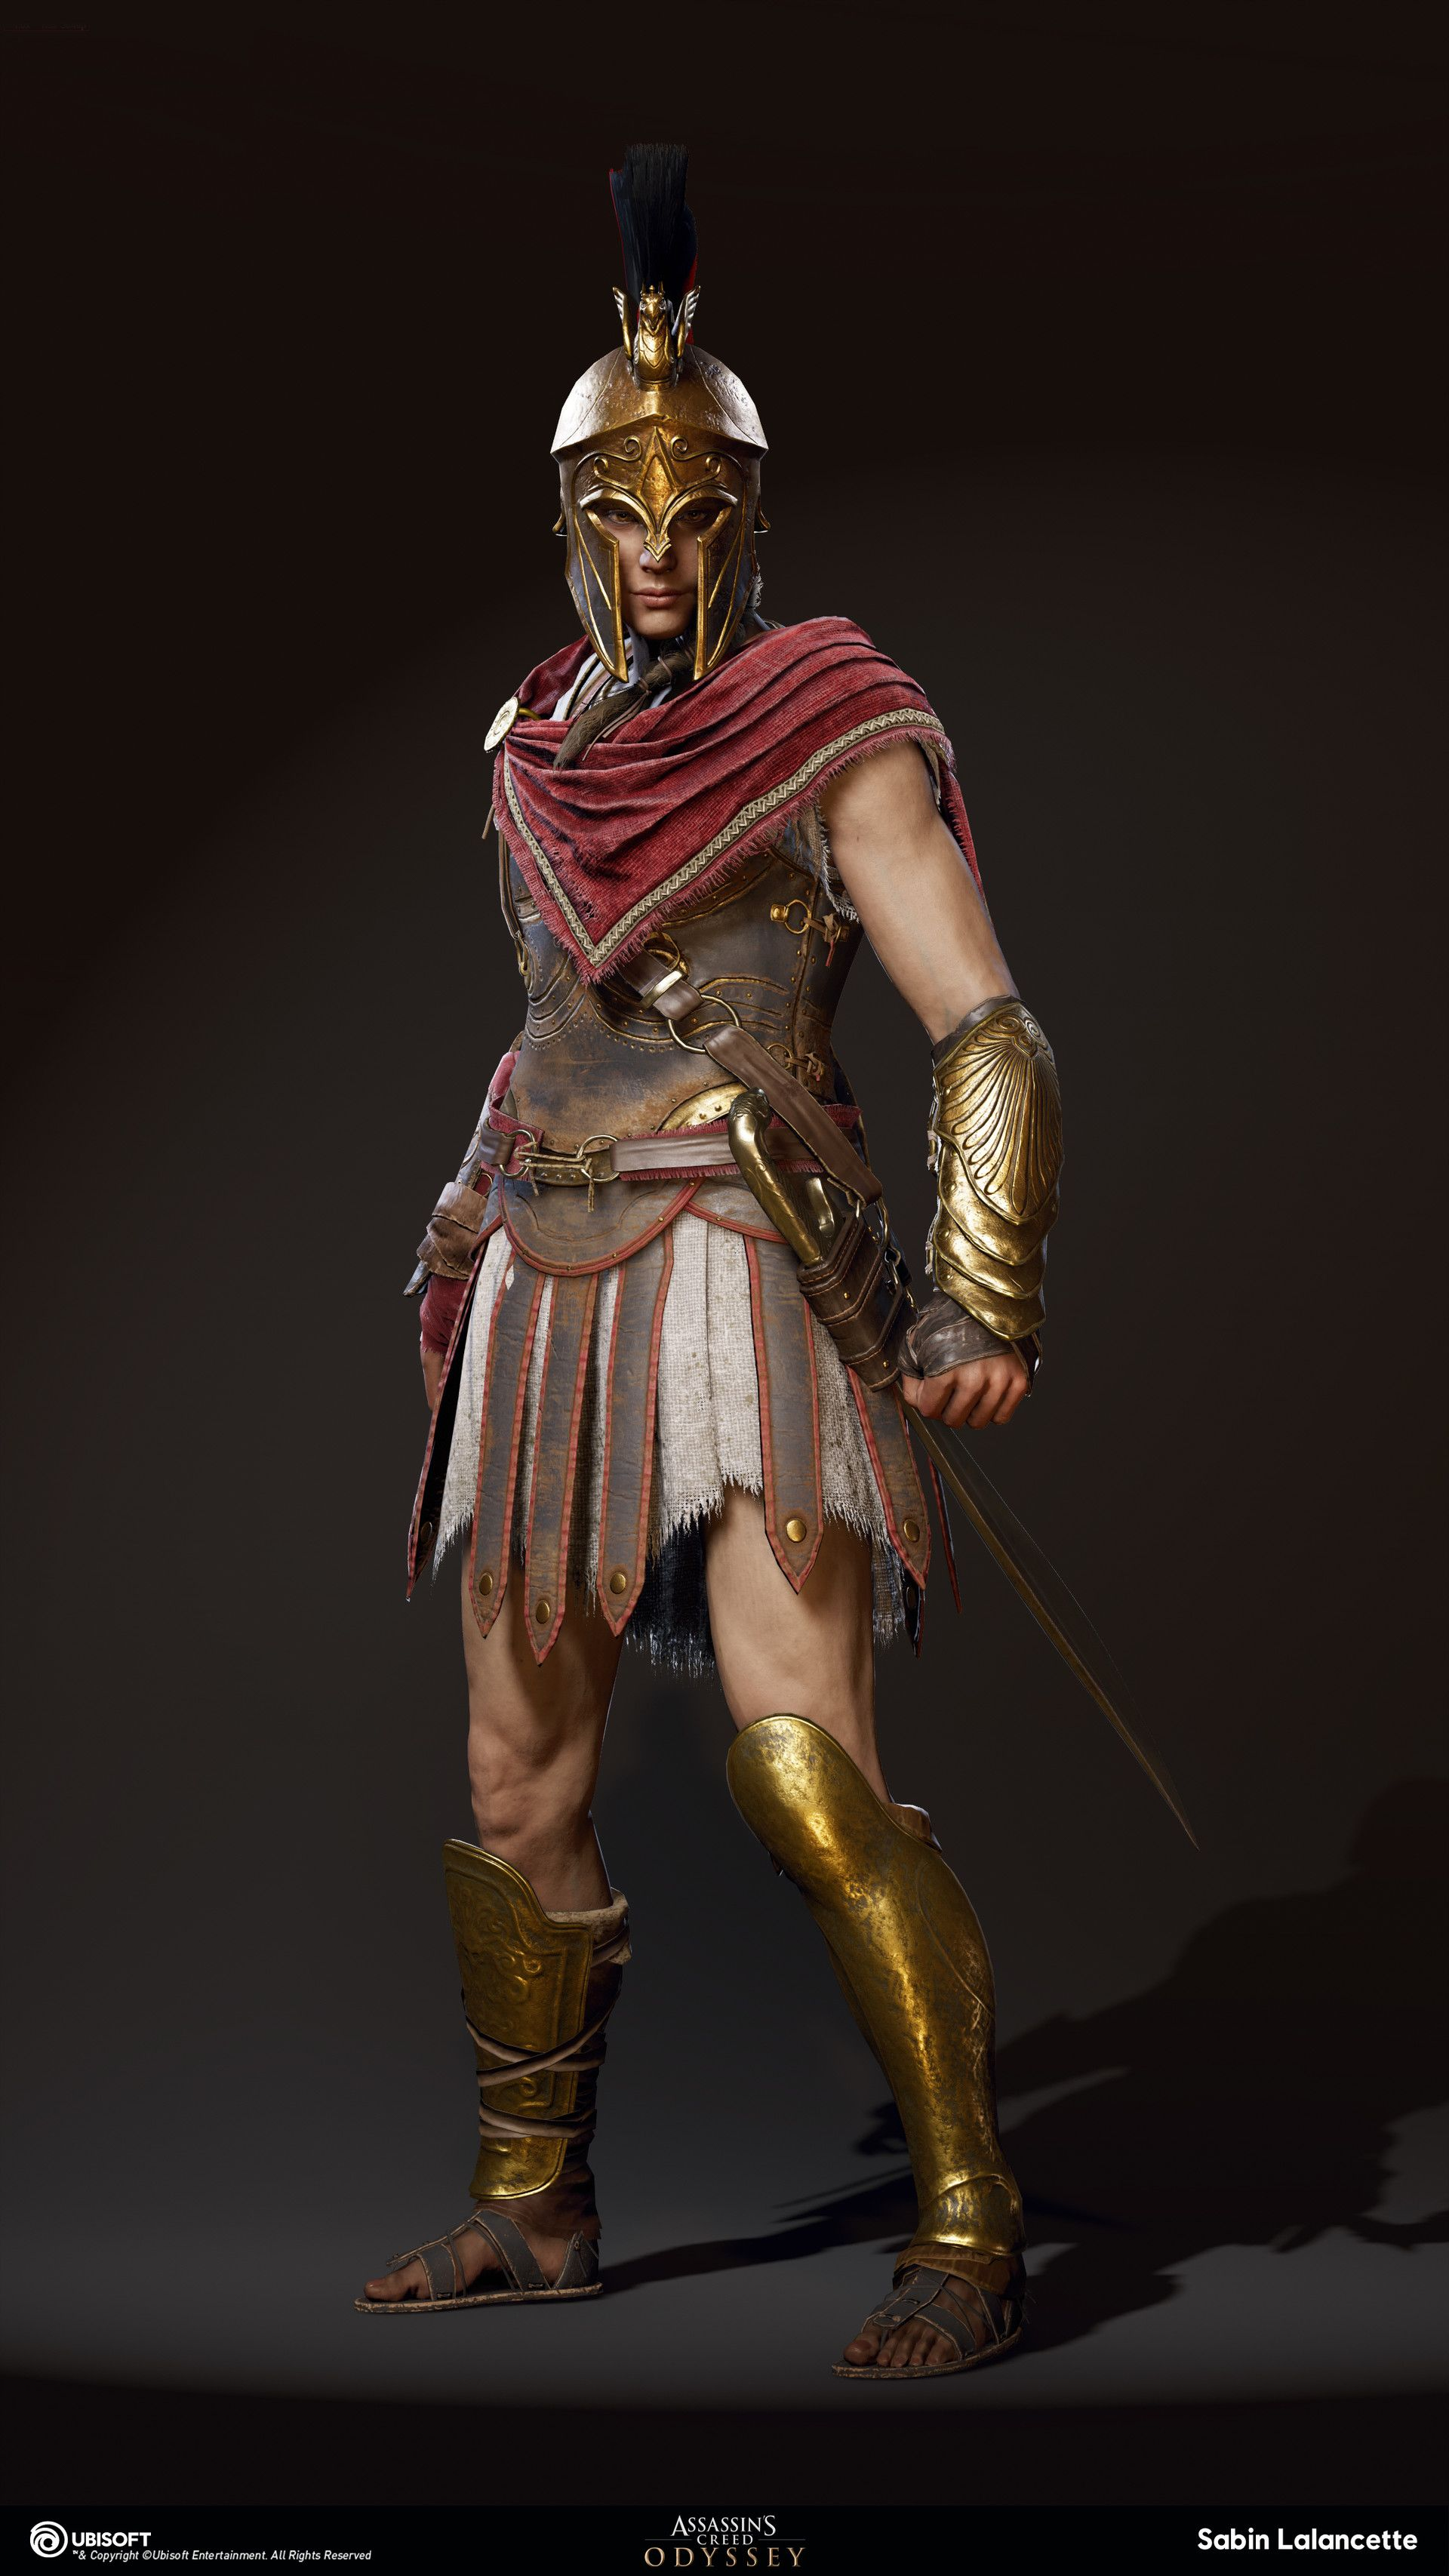 Pin By Haim Harris On Assassin S Creed Assassins Creed Art